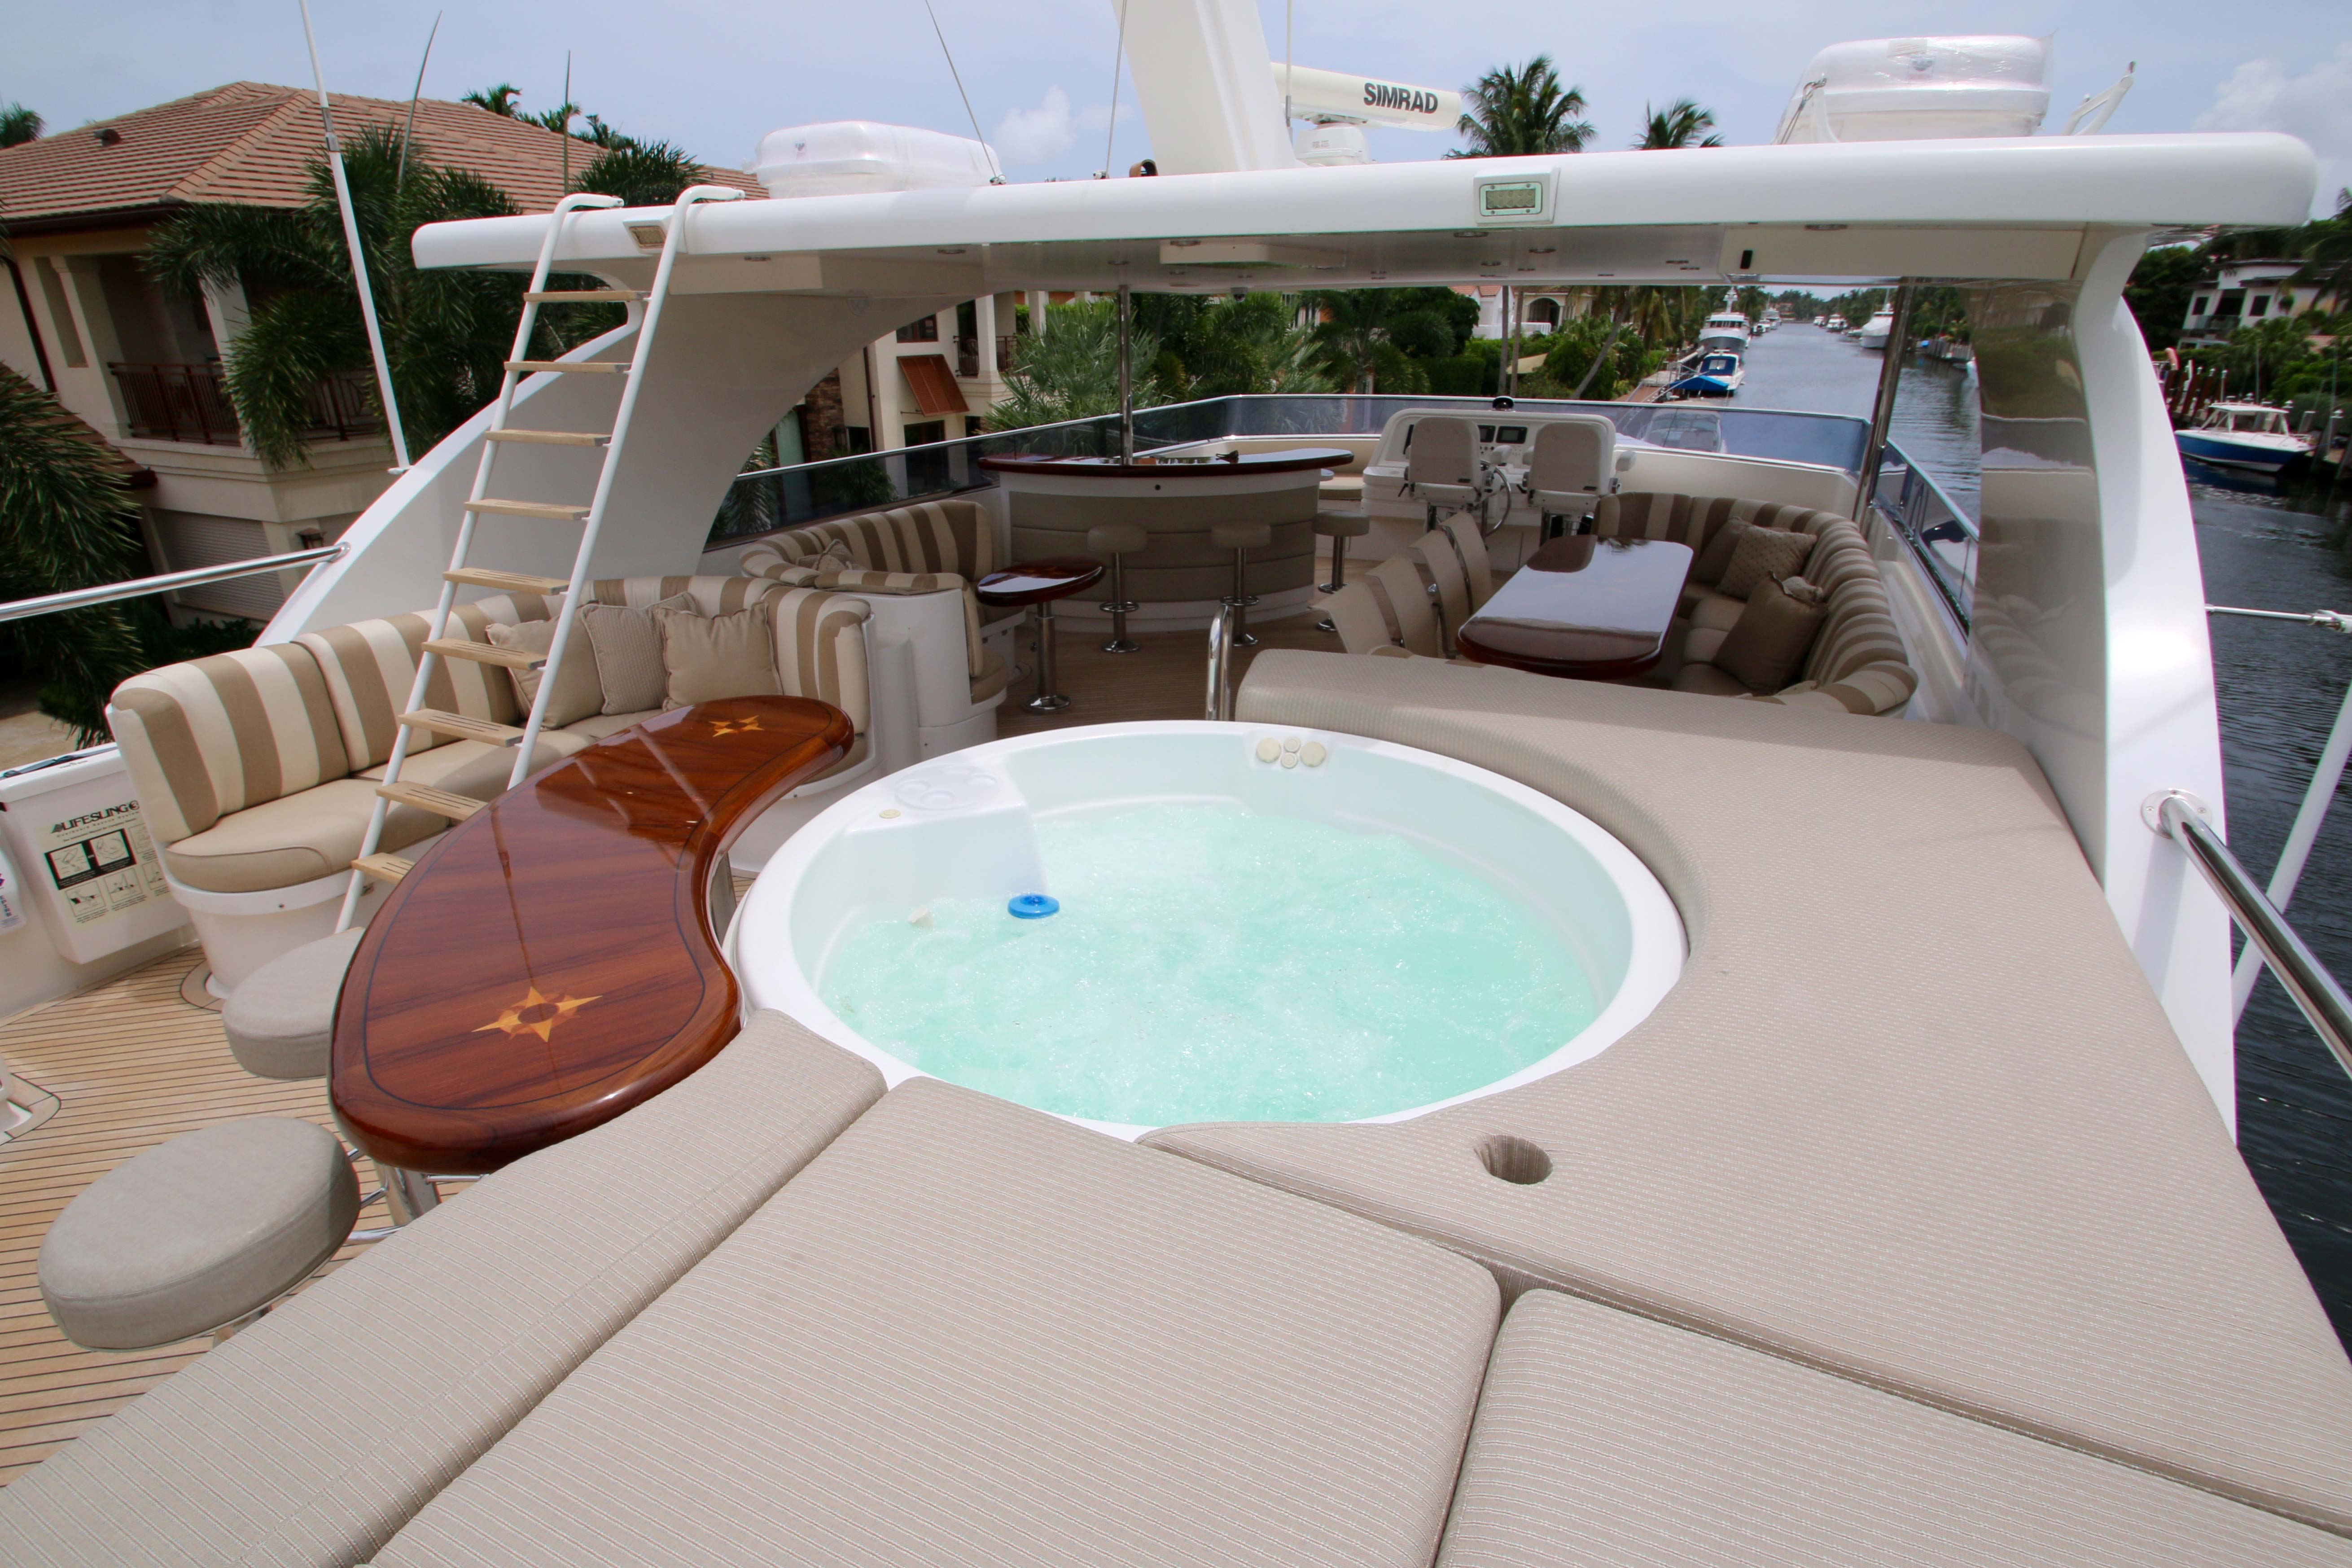 Jacuzzi On Sundeck Of EXIT STRATEGY